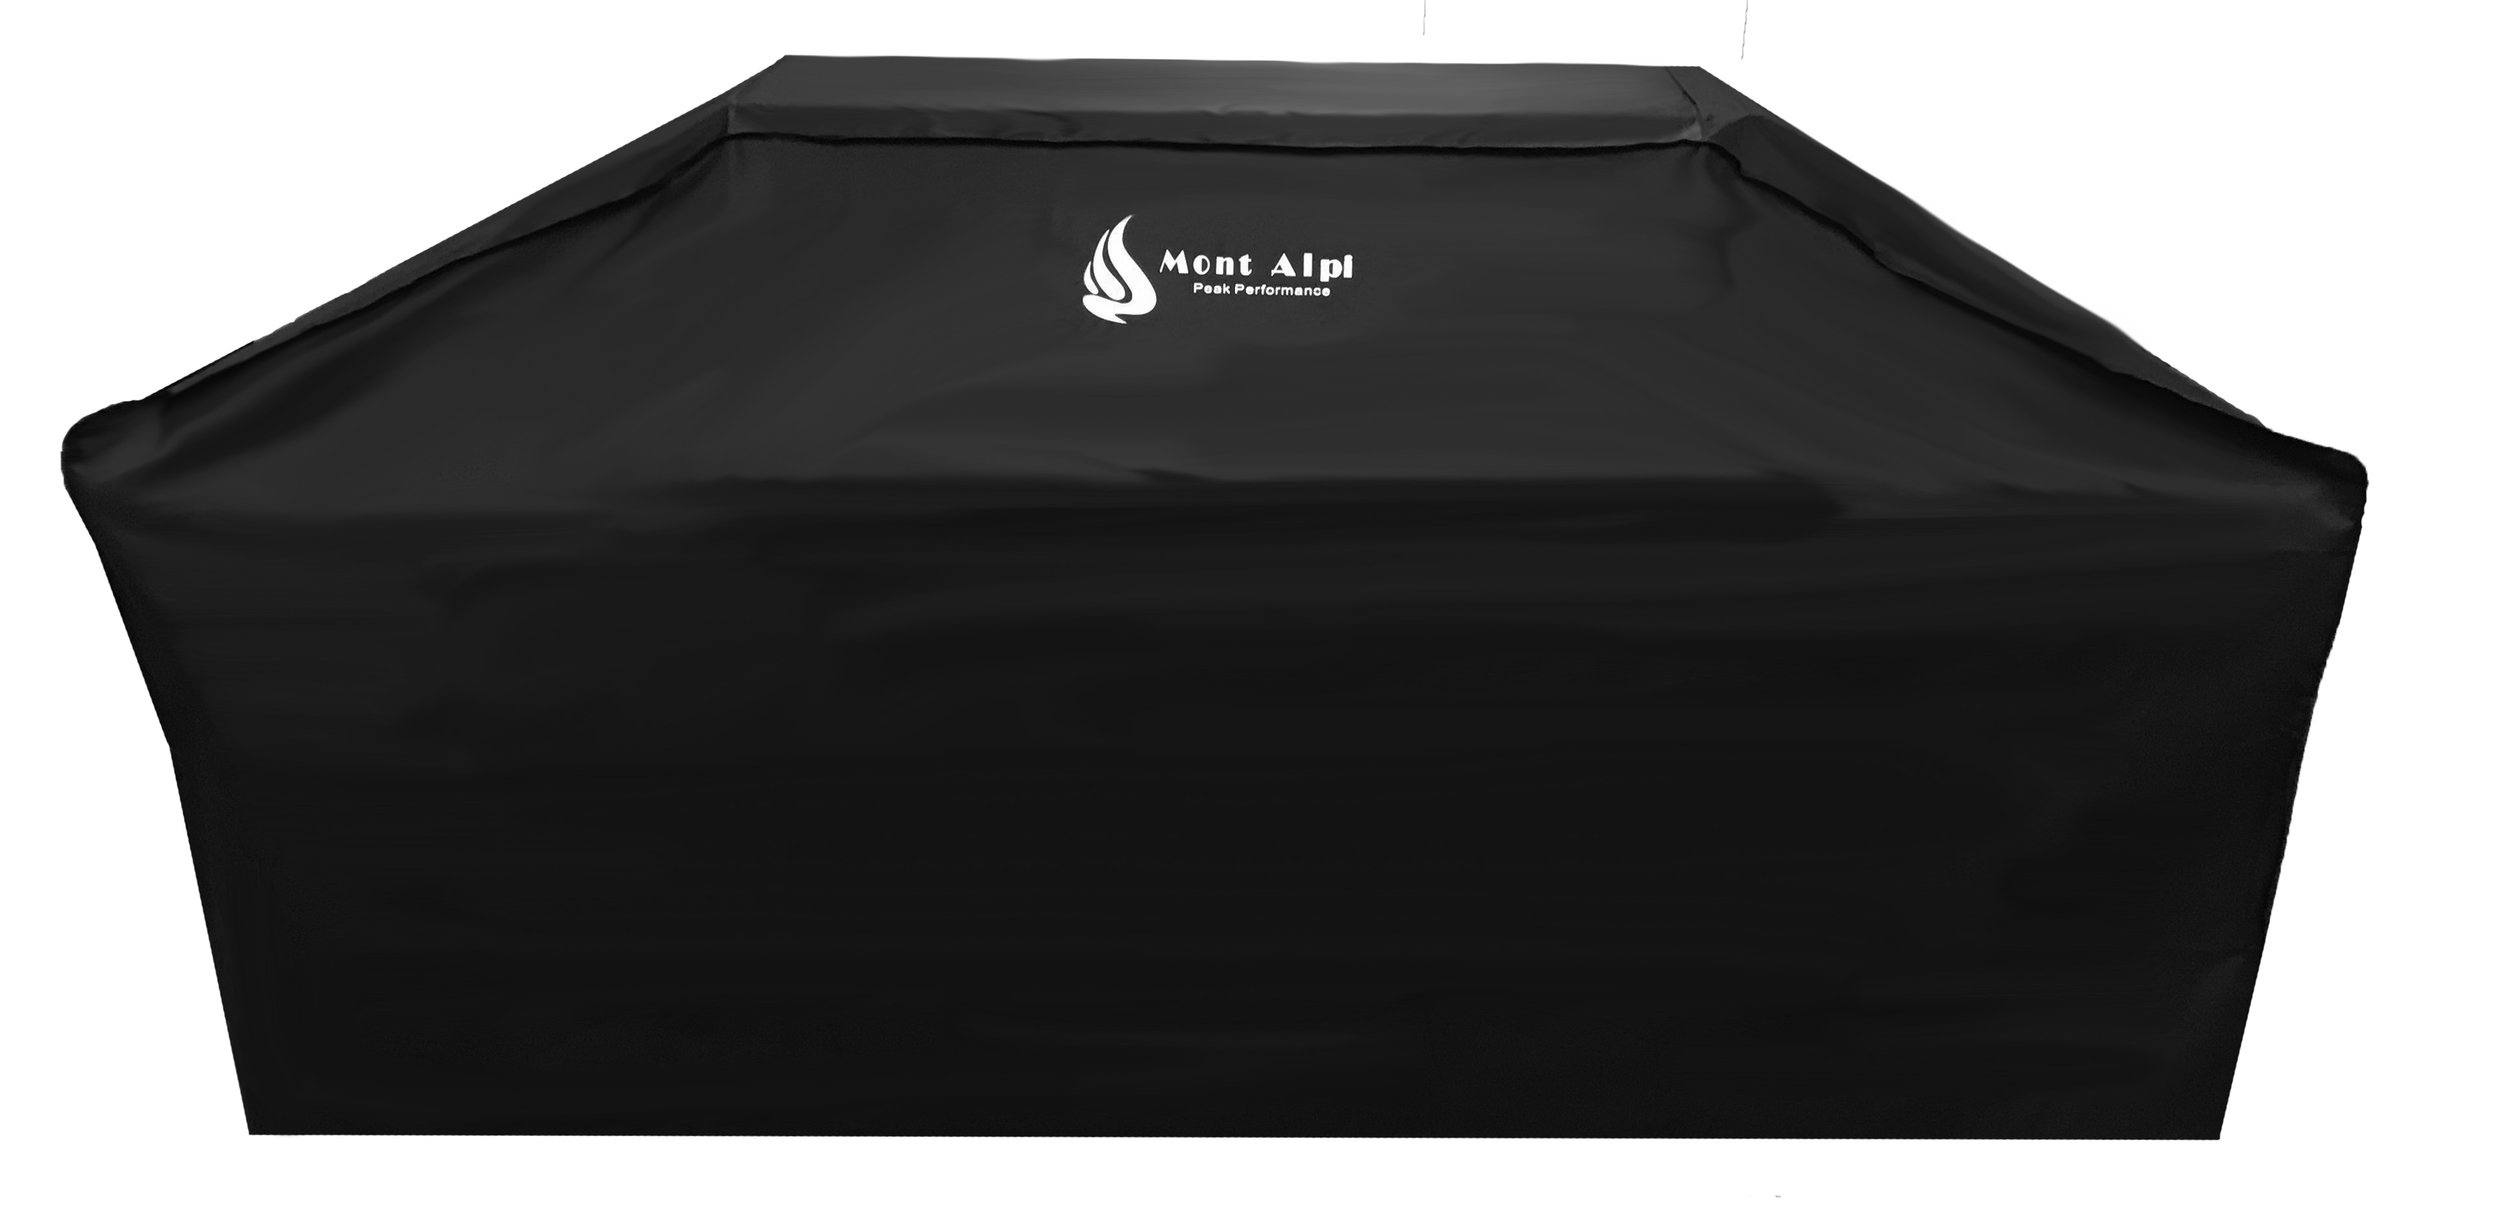 All Weather Covers - The Mont Alpi all weather covers are made from a durable weather resistant fabric that will help to extend the life of your grill. The snug fit of the cover gives better protection to the grill. Available for all grills and islands.